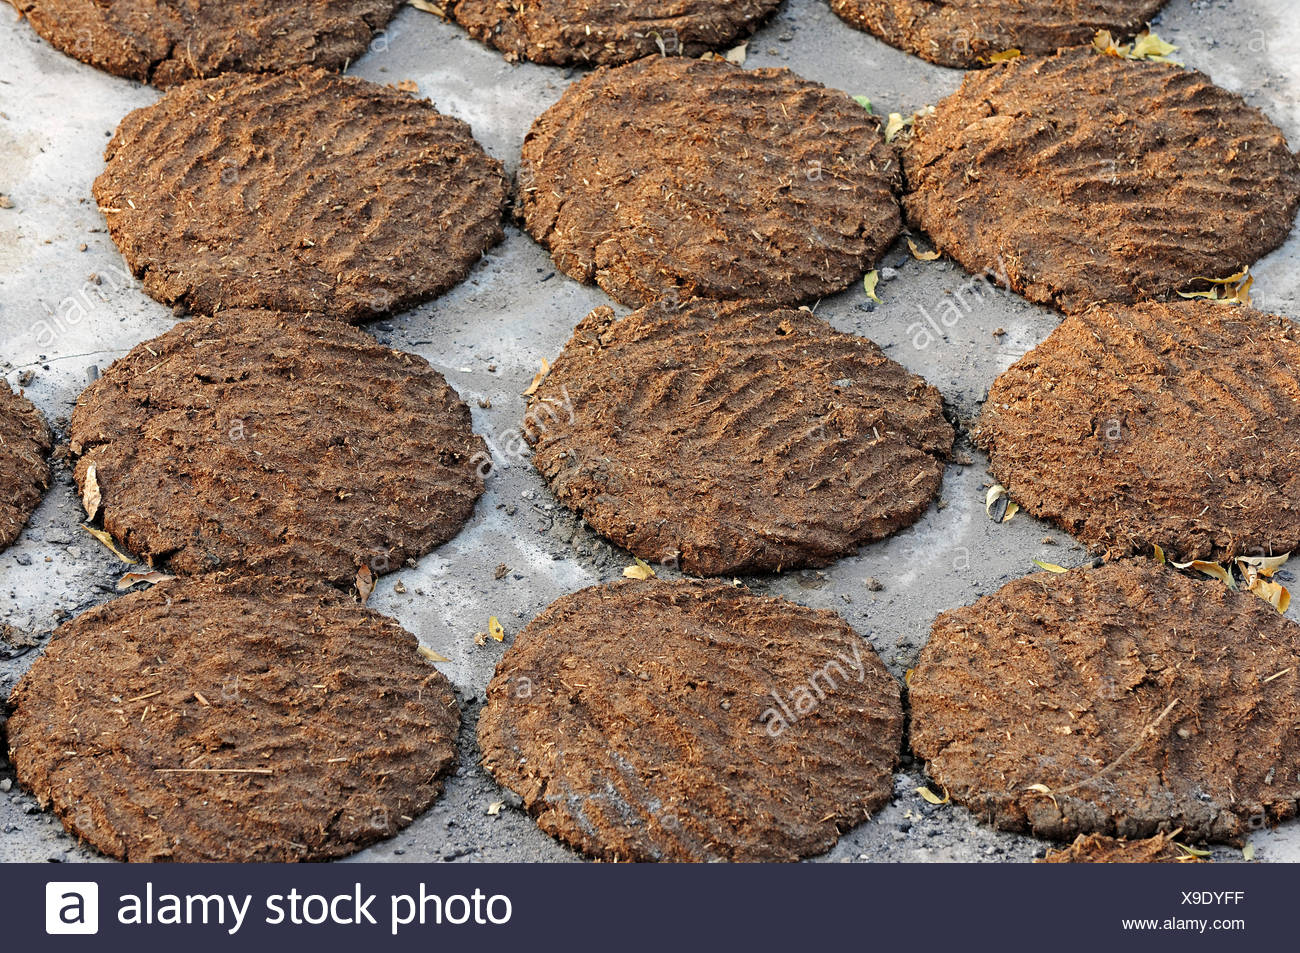 Cow dung laid out to dry for use as fuel, Bharatpur, Rajasthan, India - Stock Image